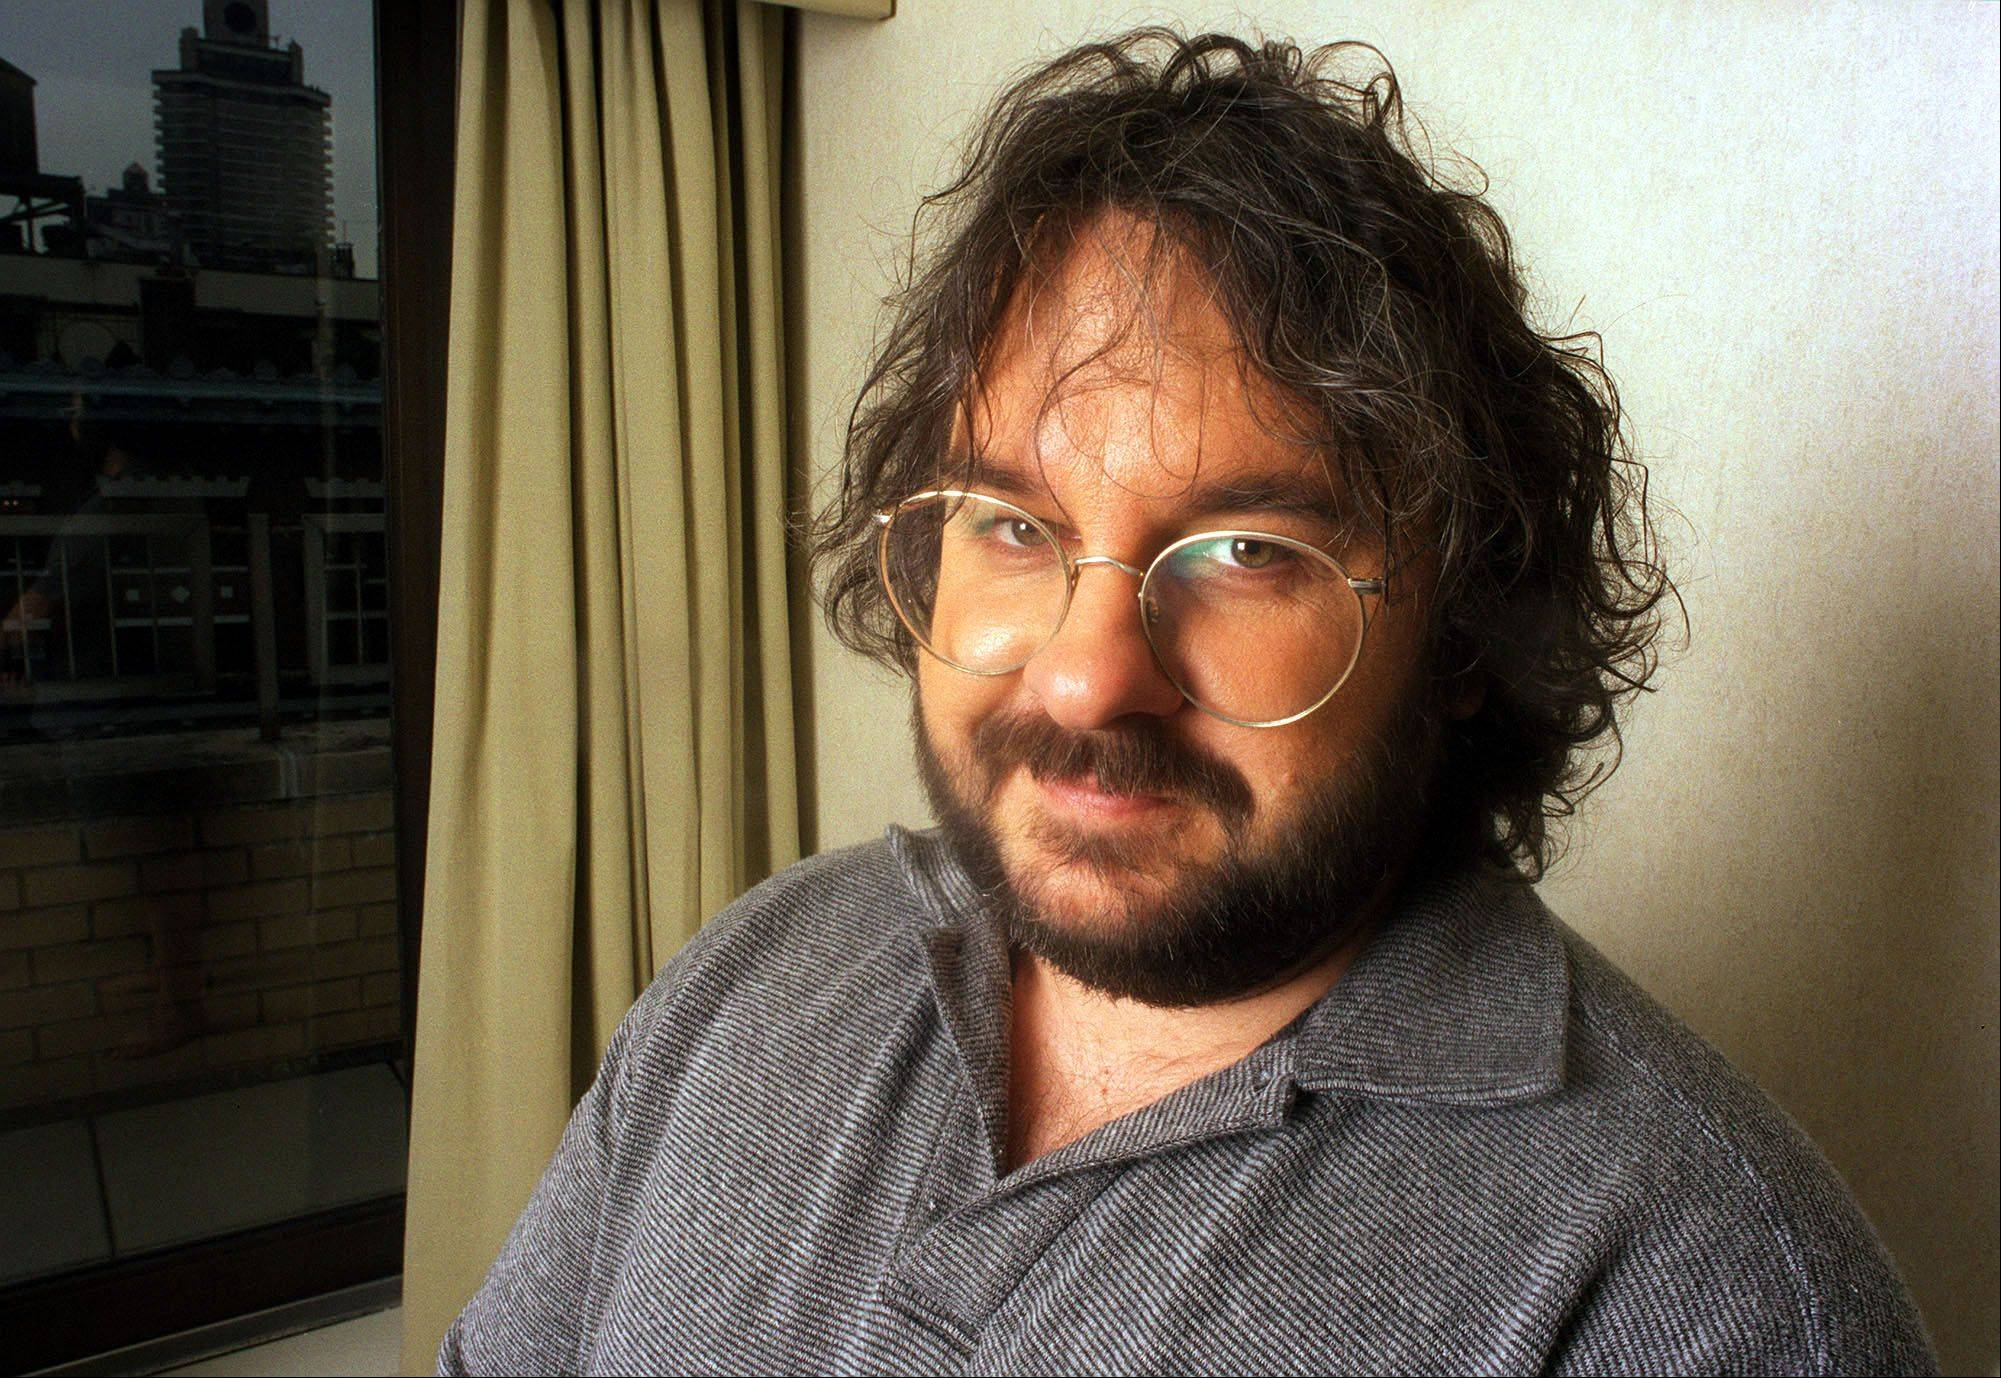 Peter Jackson is adding a third film to what was planned to be the two-part series �The Hobbit.�